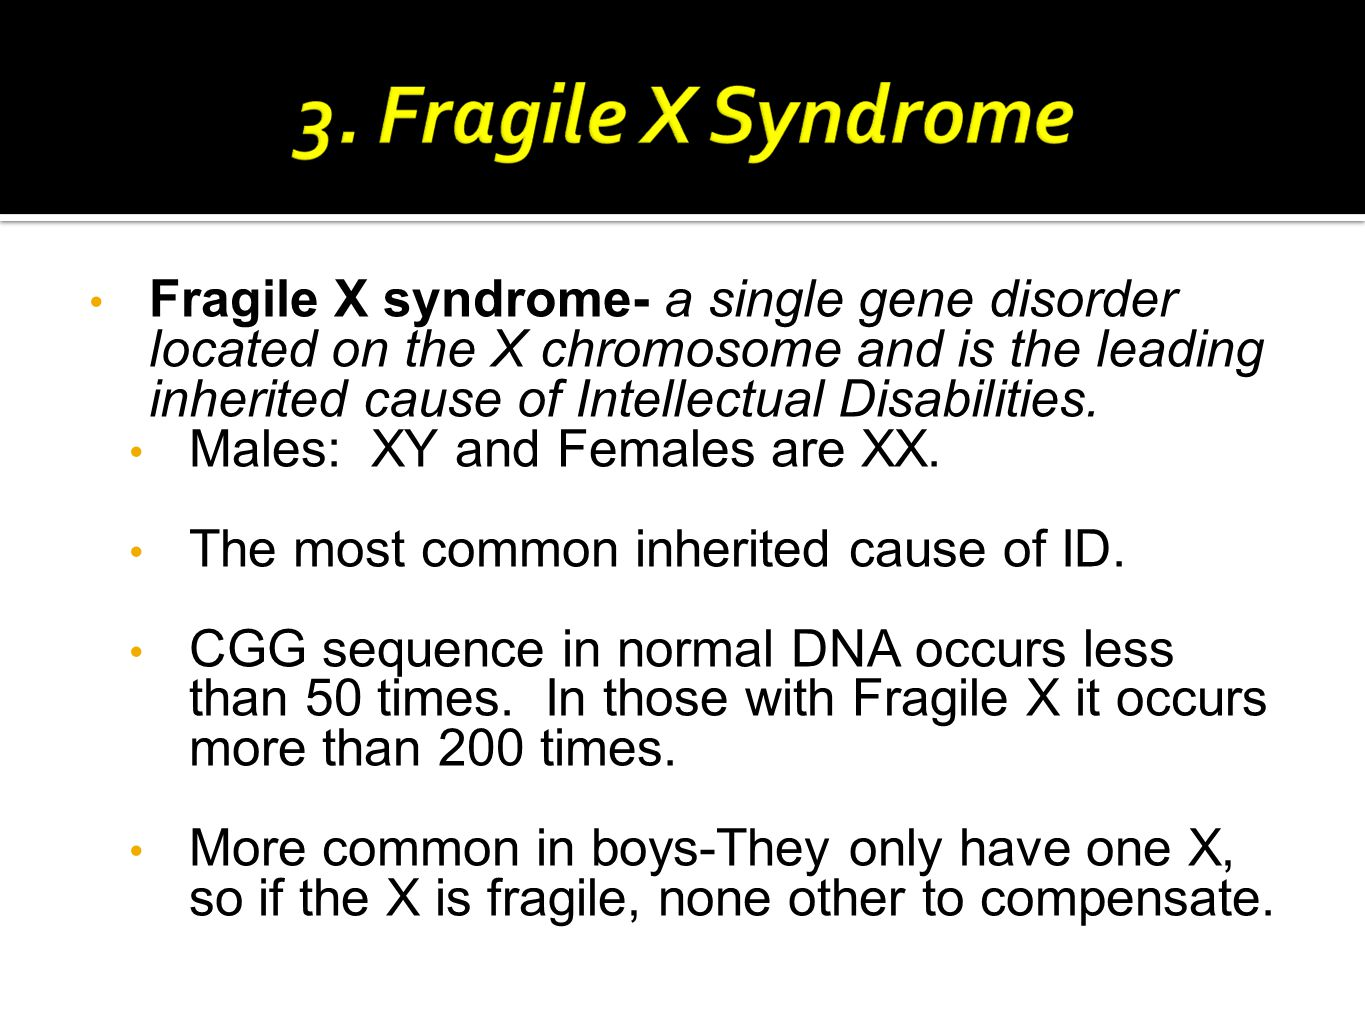 Fragile X syndrome- a single gene disorder located on the X chromosome and is the leading inherited cause of Intellectual Disabilities.